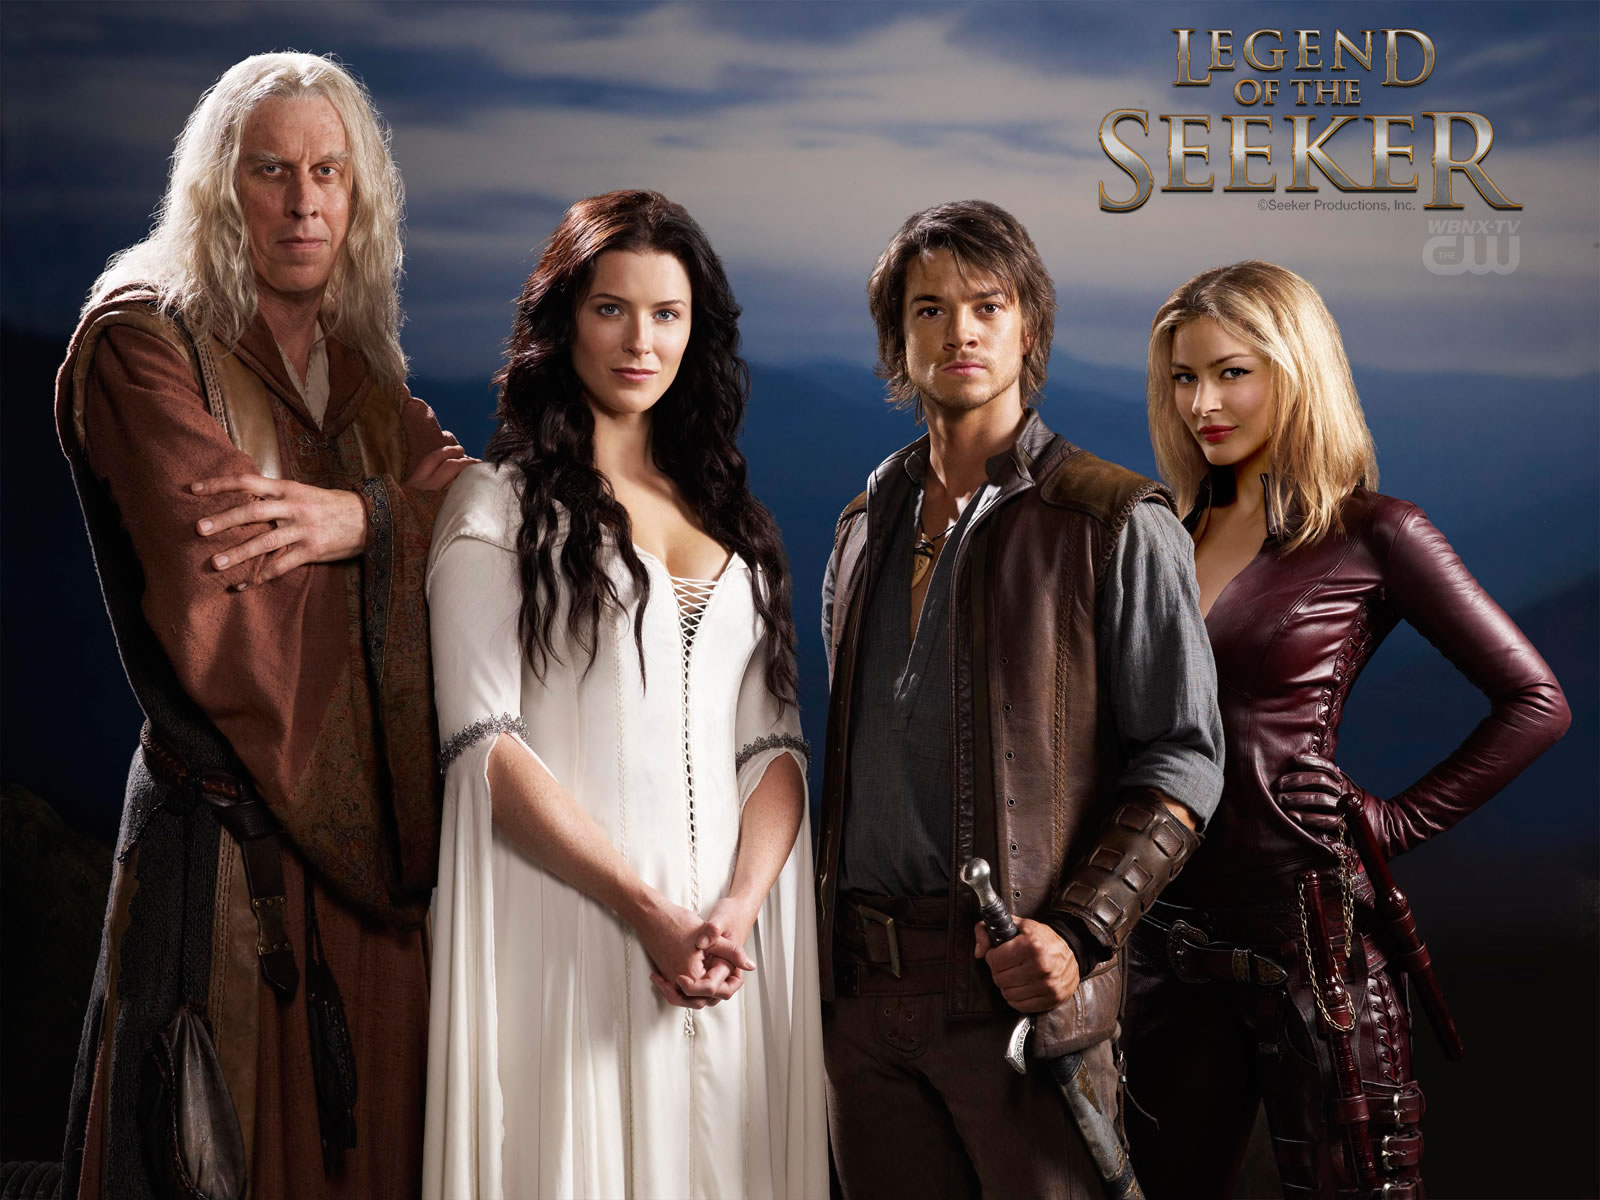 Legend Of The Seeker Season 2 Wallpaper -season-2-wallpaper-1 jpg